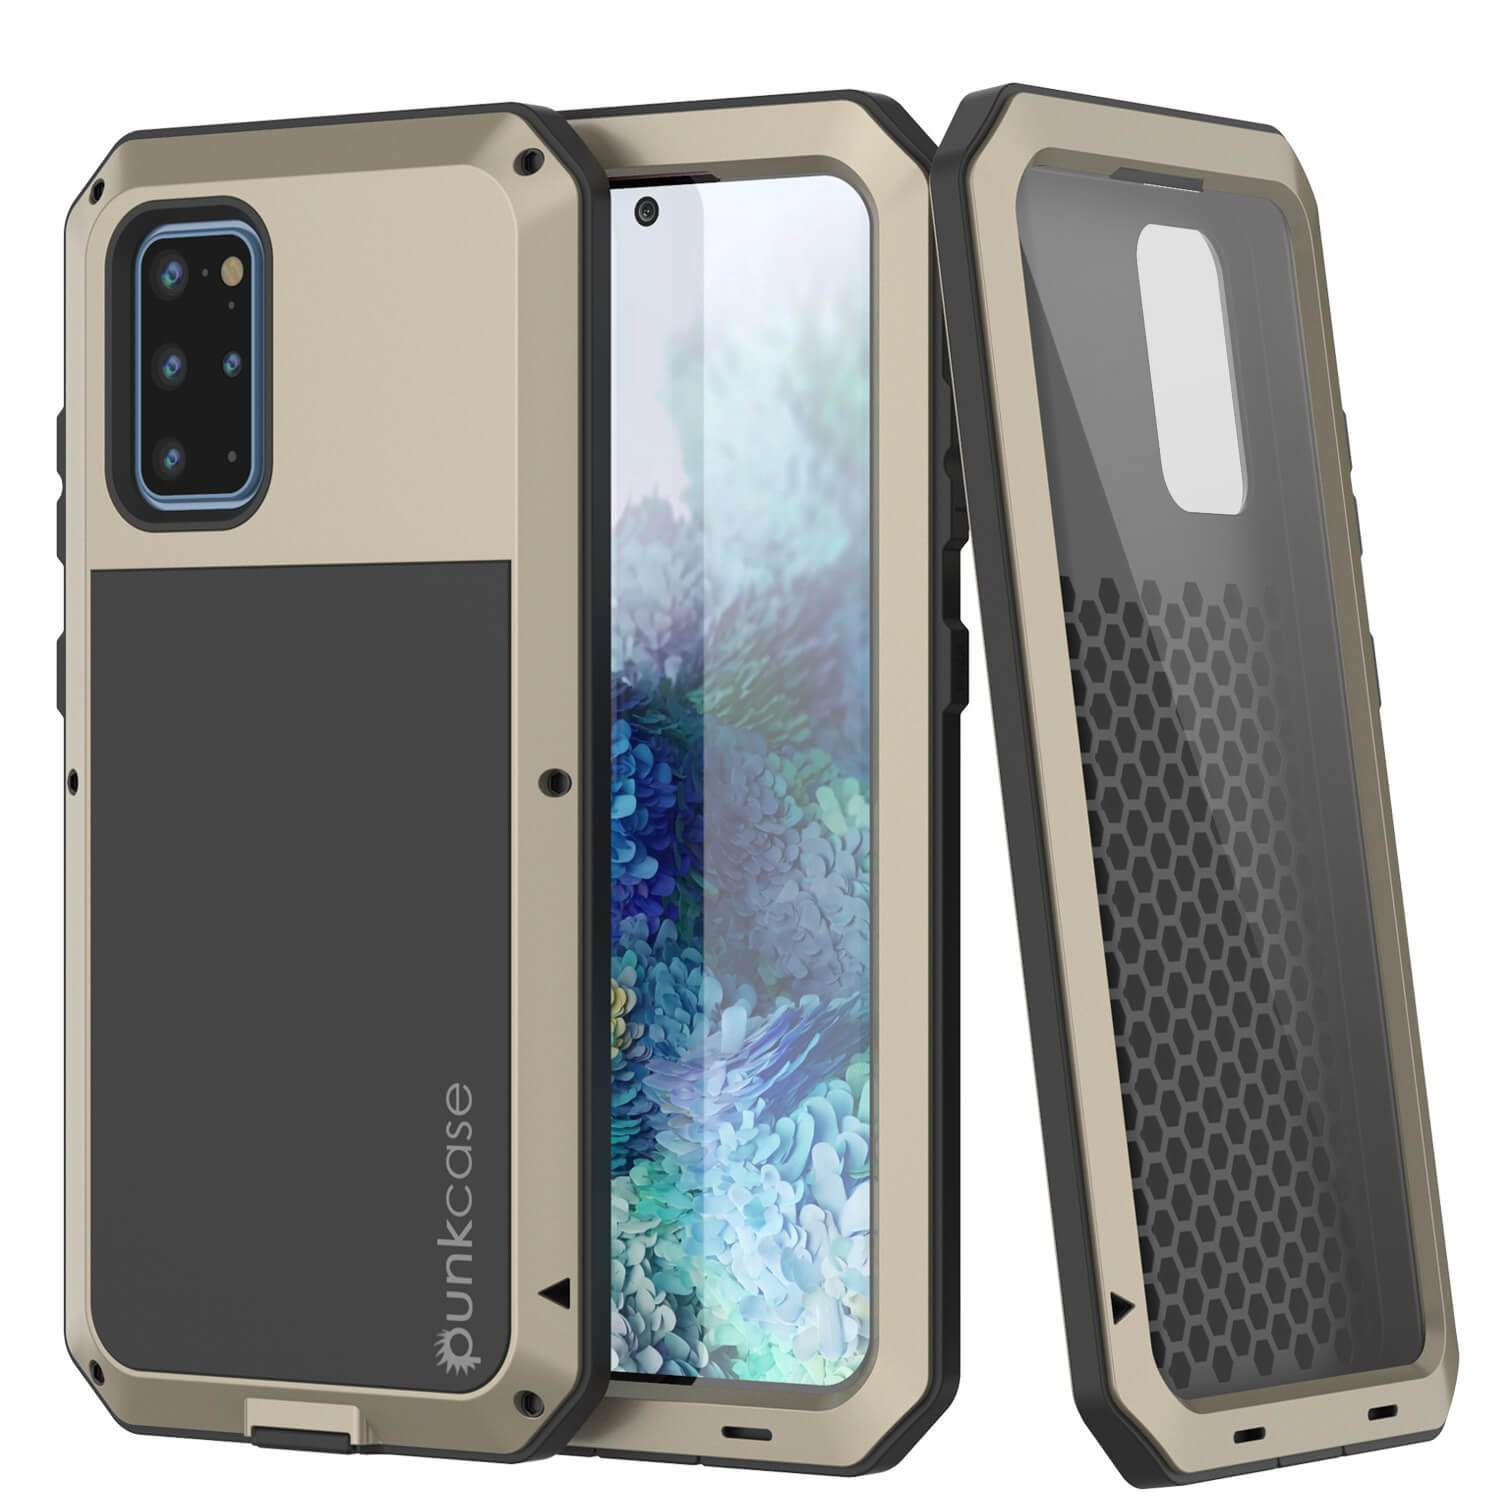 Galaxy s20+ Plus Metal Case, Heavy Duty Military Grade Rugged Armor Cover [Gold]